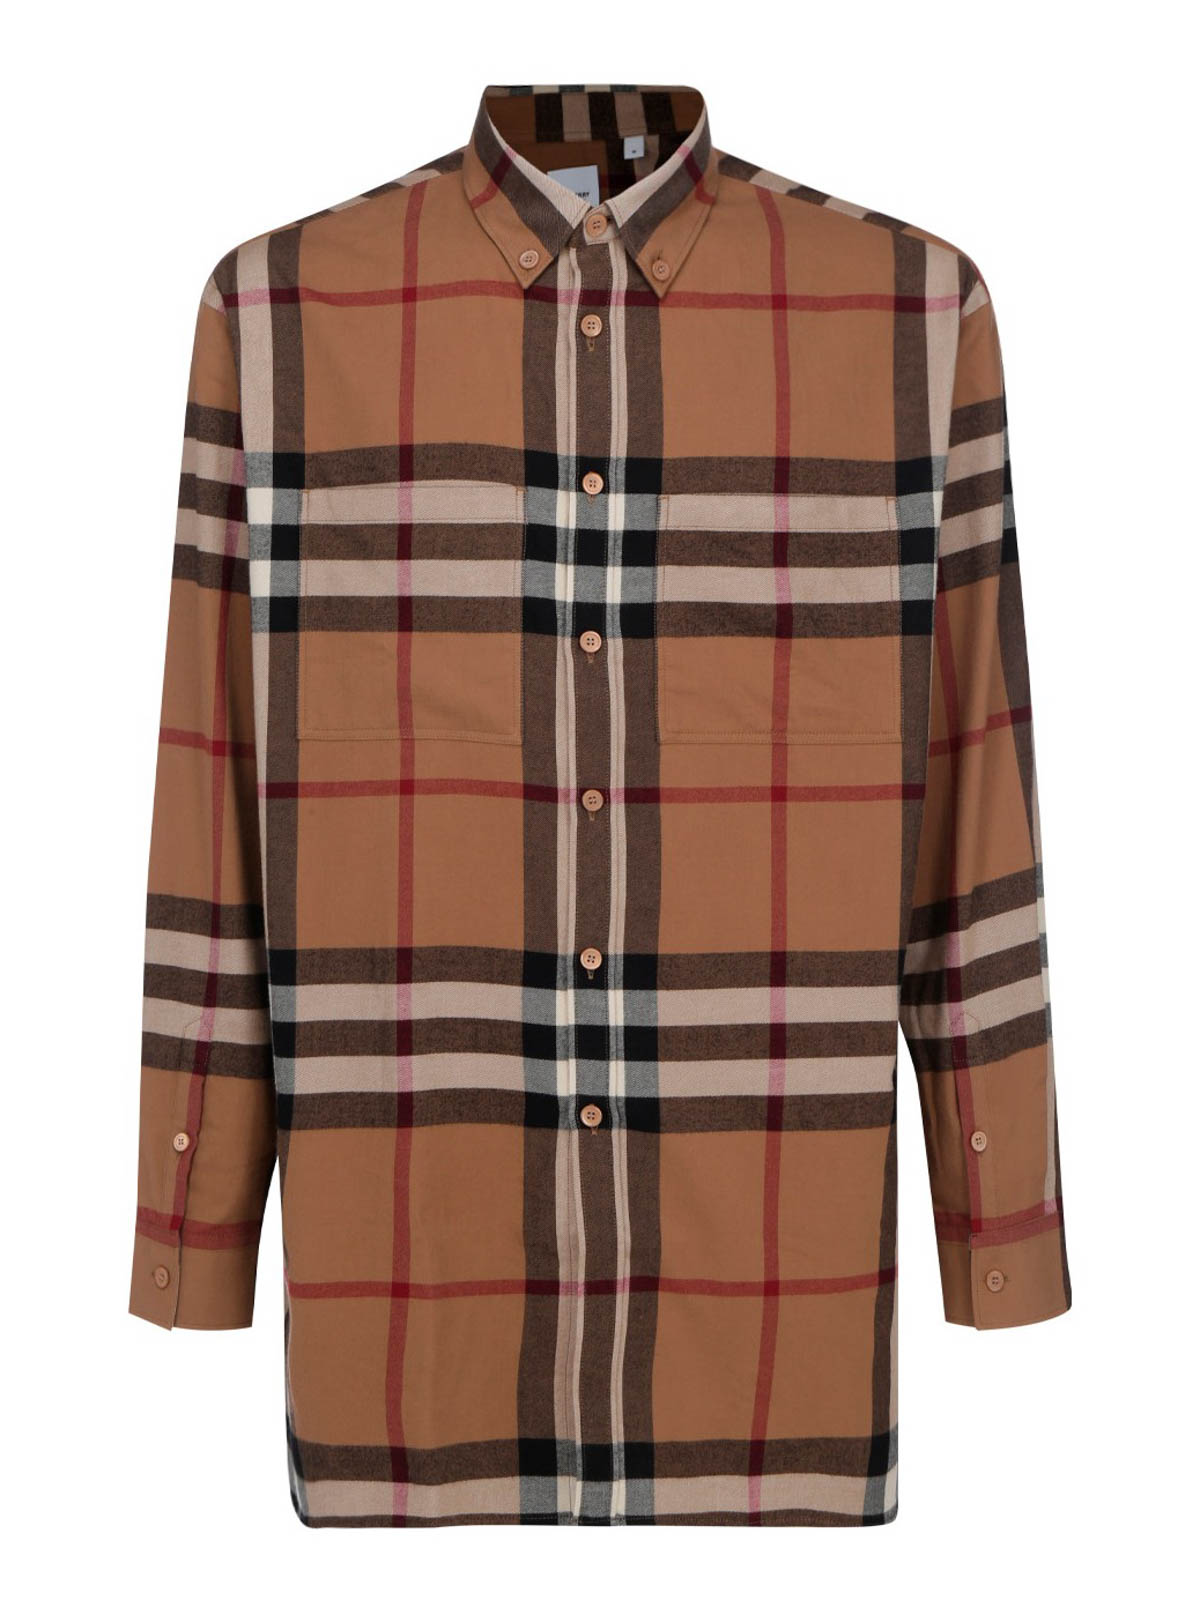 Burberry VINTAGE CHECK PATTERNED SHIRT